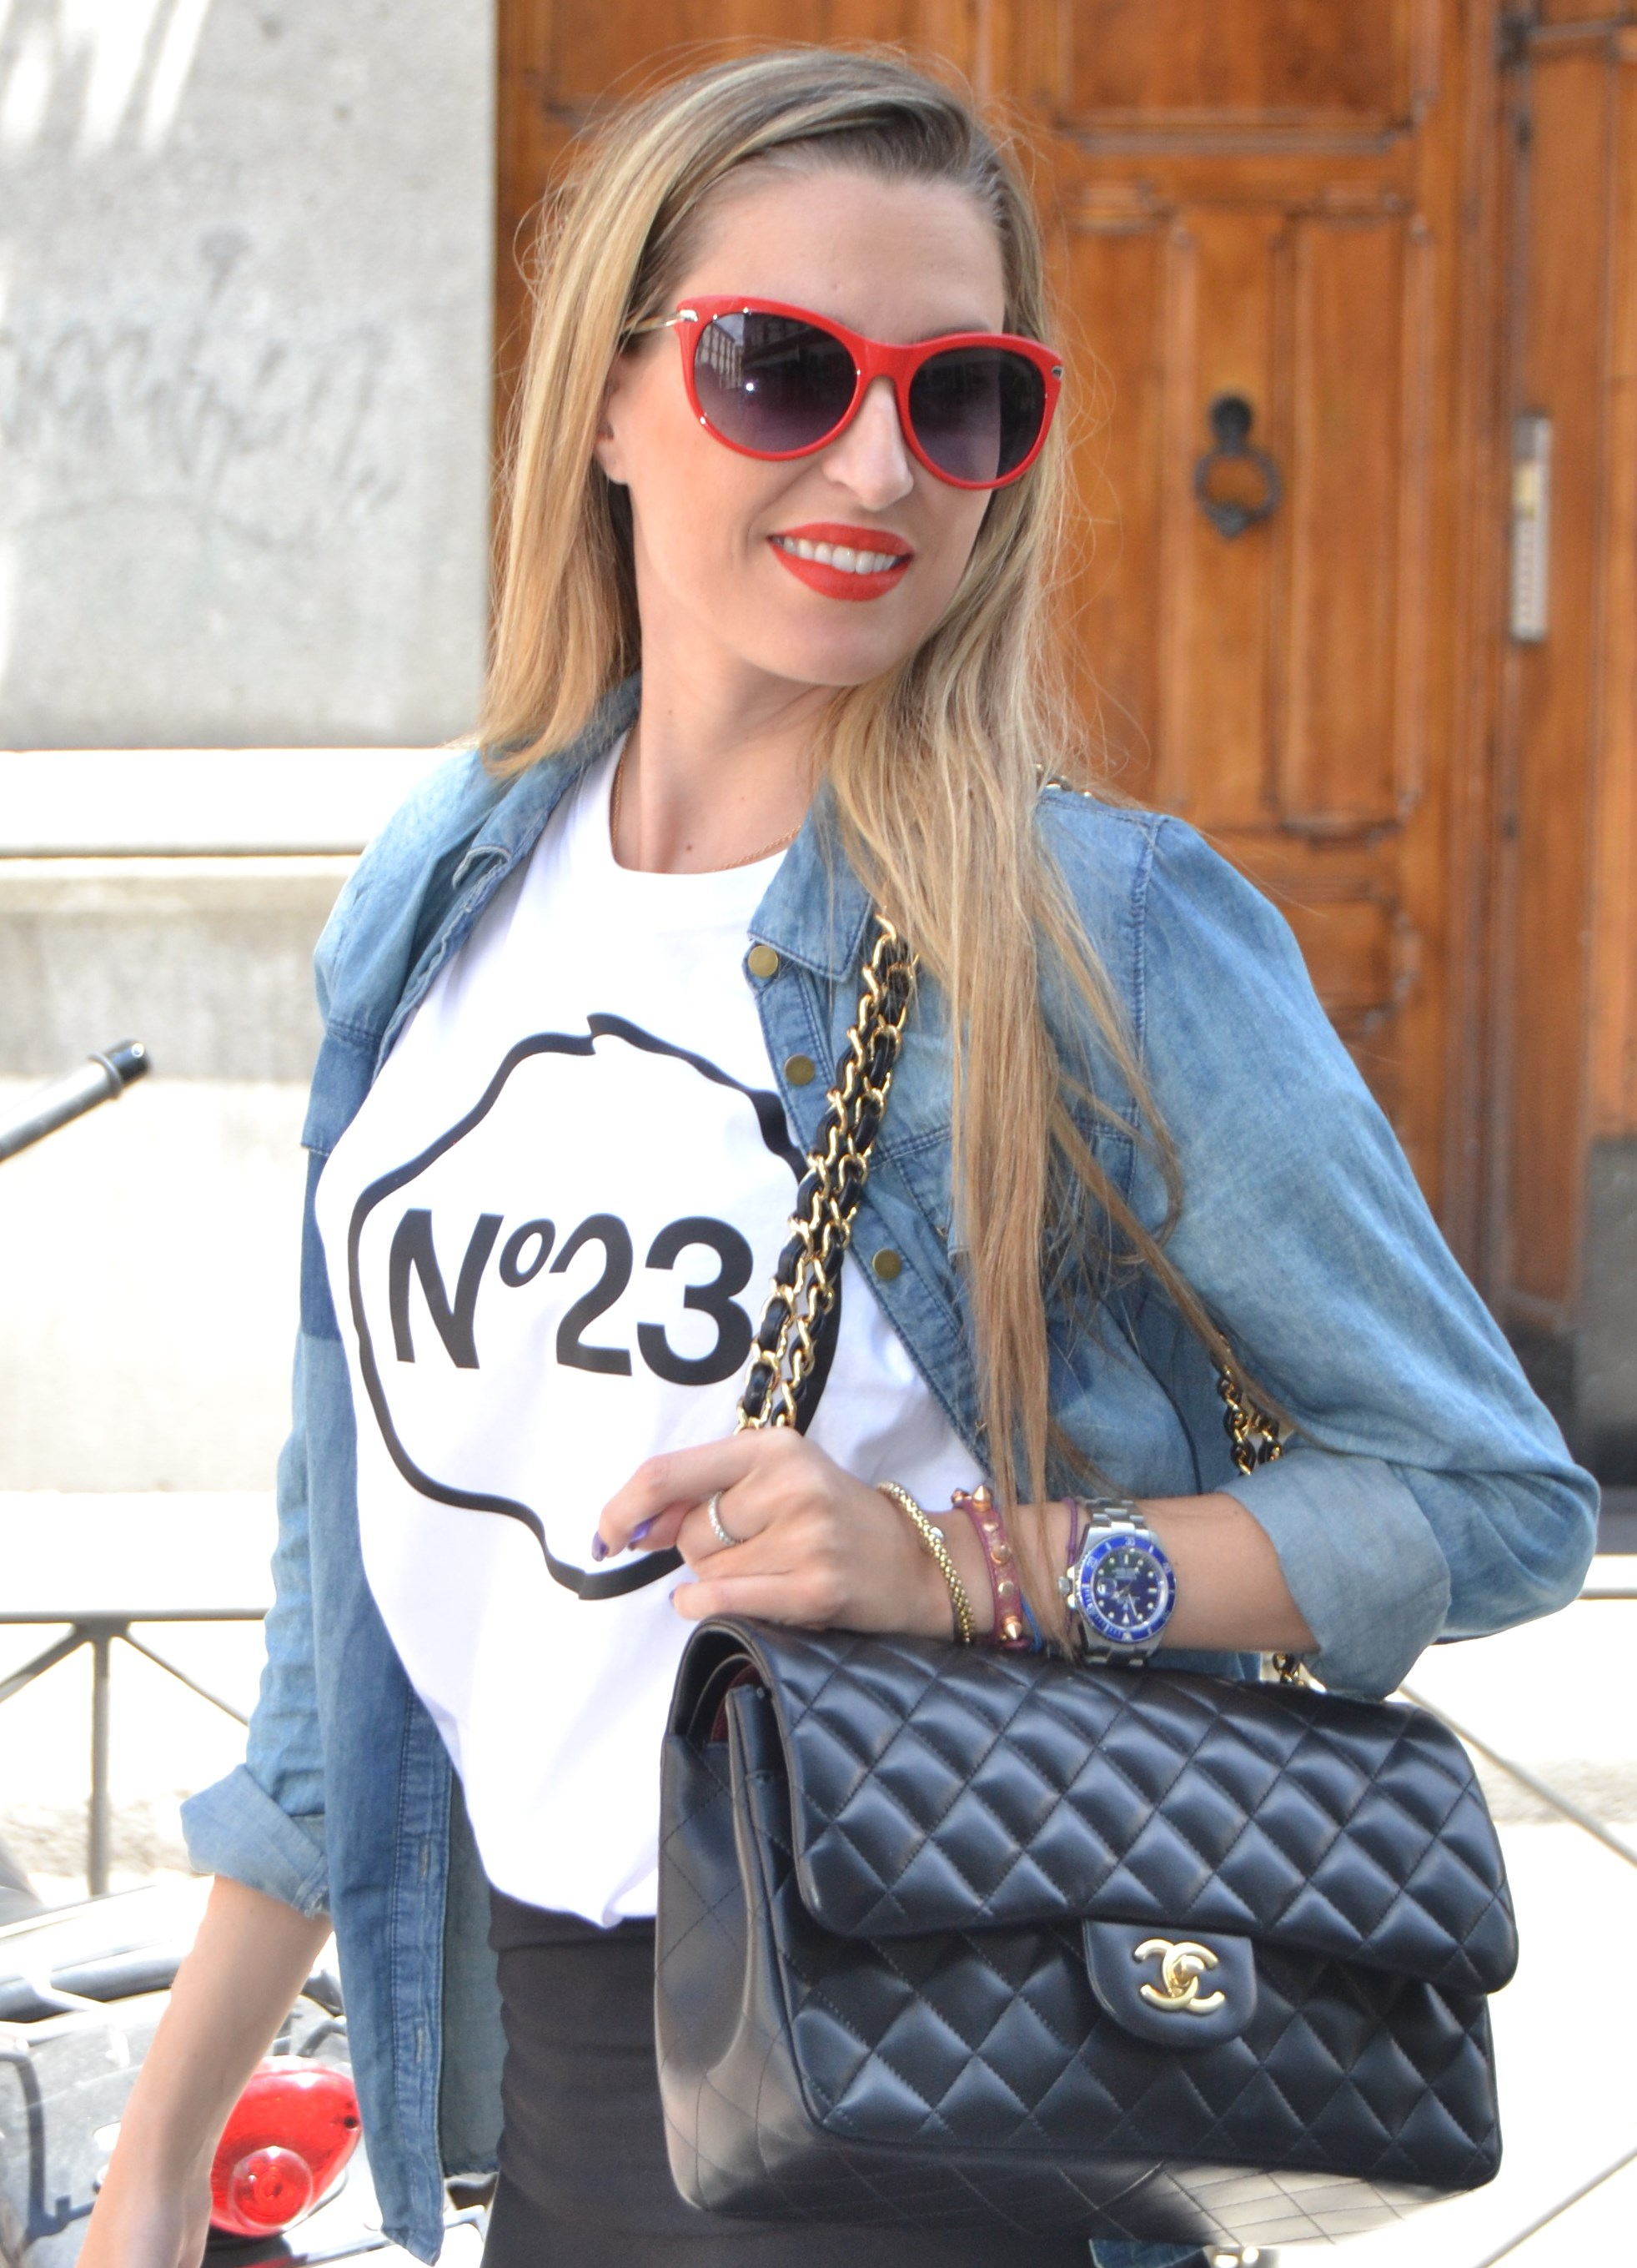 Nike_Free_FlyKnight_Sneakers_Chanel_255_Chanel_Bag_Guess_Sunglasses_Denim_Shirt_Lara_Martin_Gilarranz_Bymyheels (7)